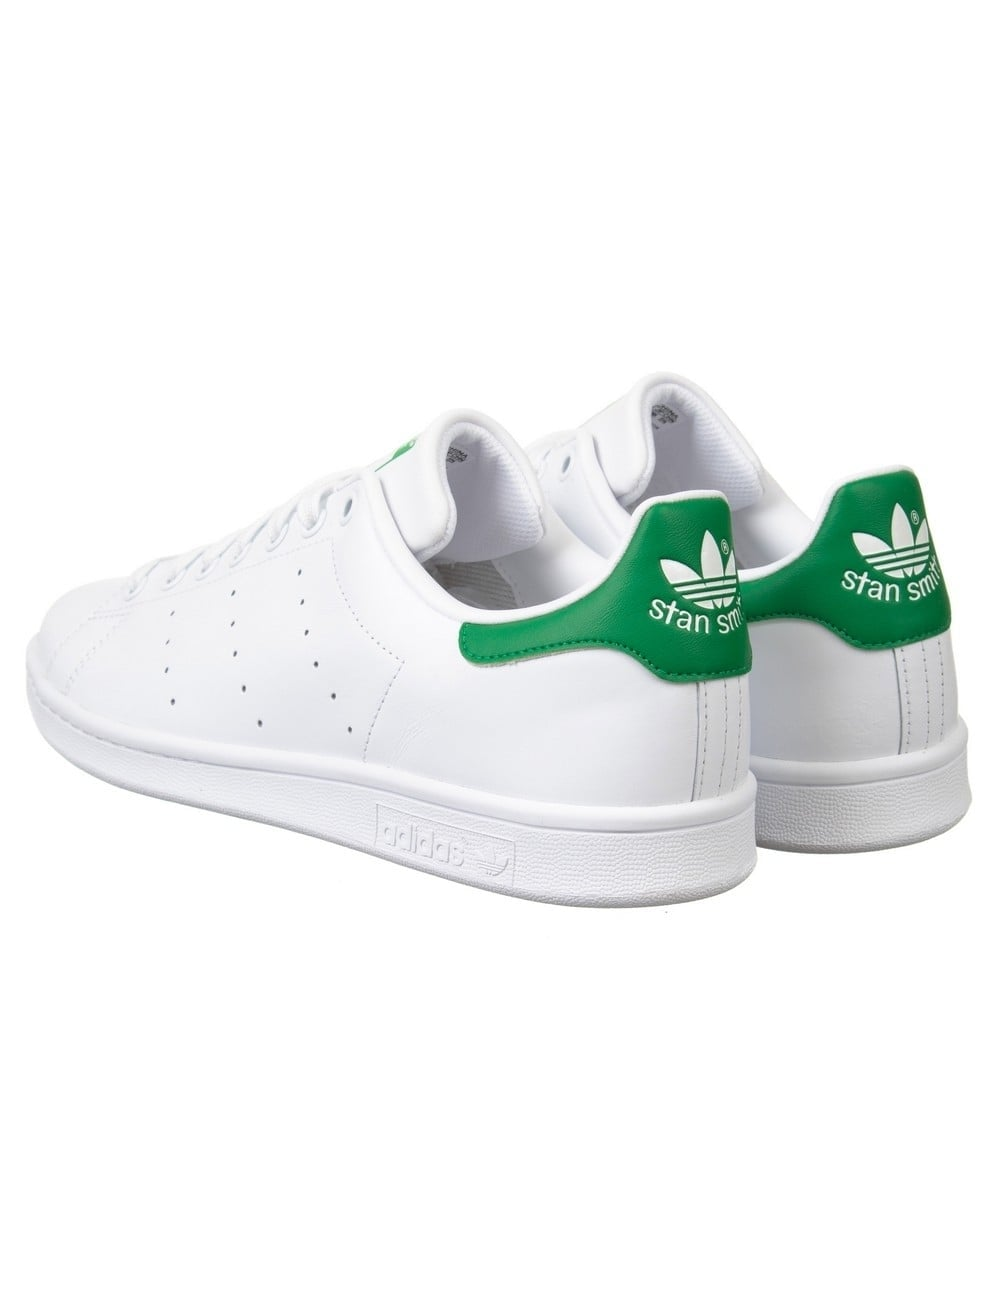 cc4667e9c57 Adidas Originals Stan Smith Shoes - White/Green - Footwear from Fat ...